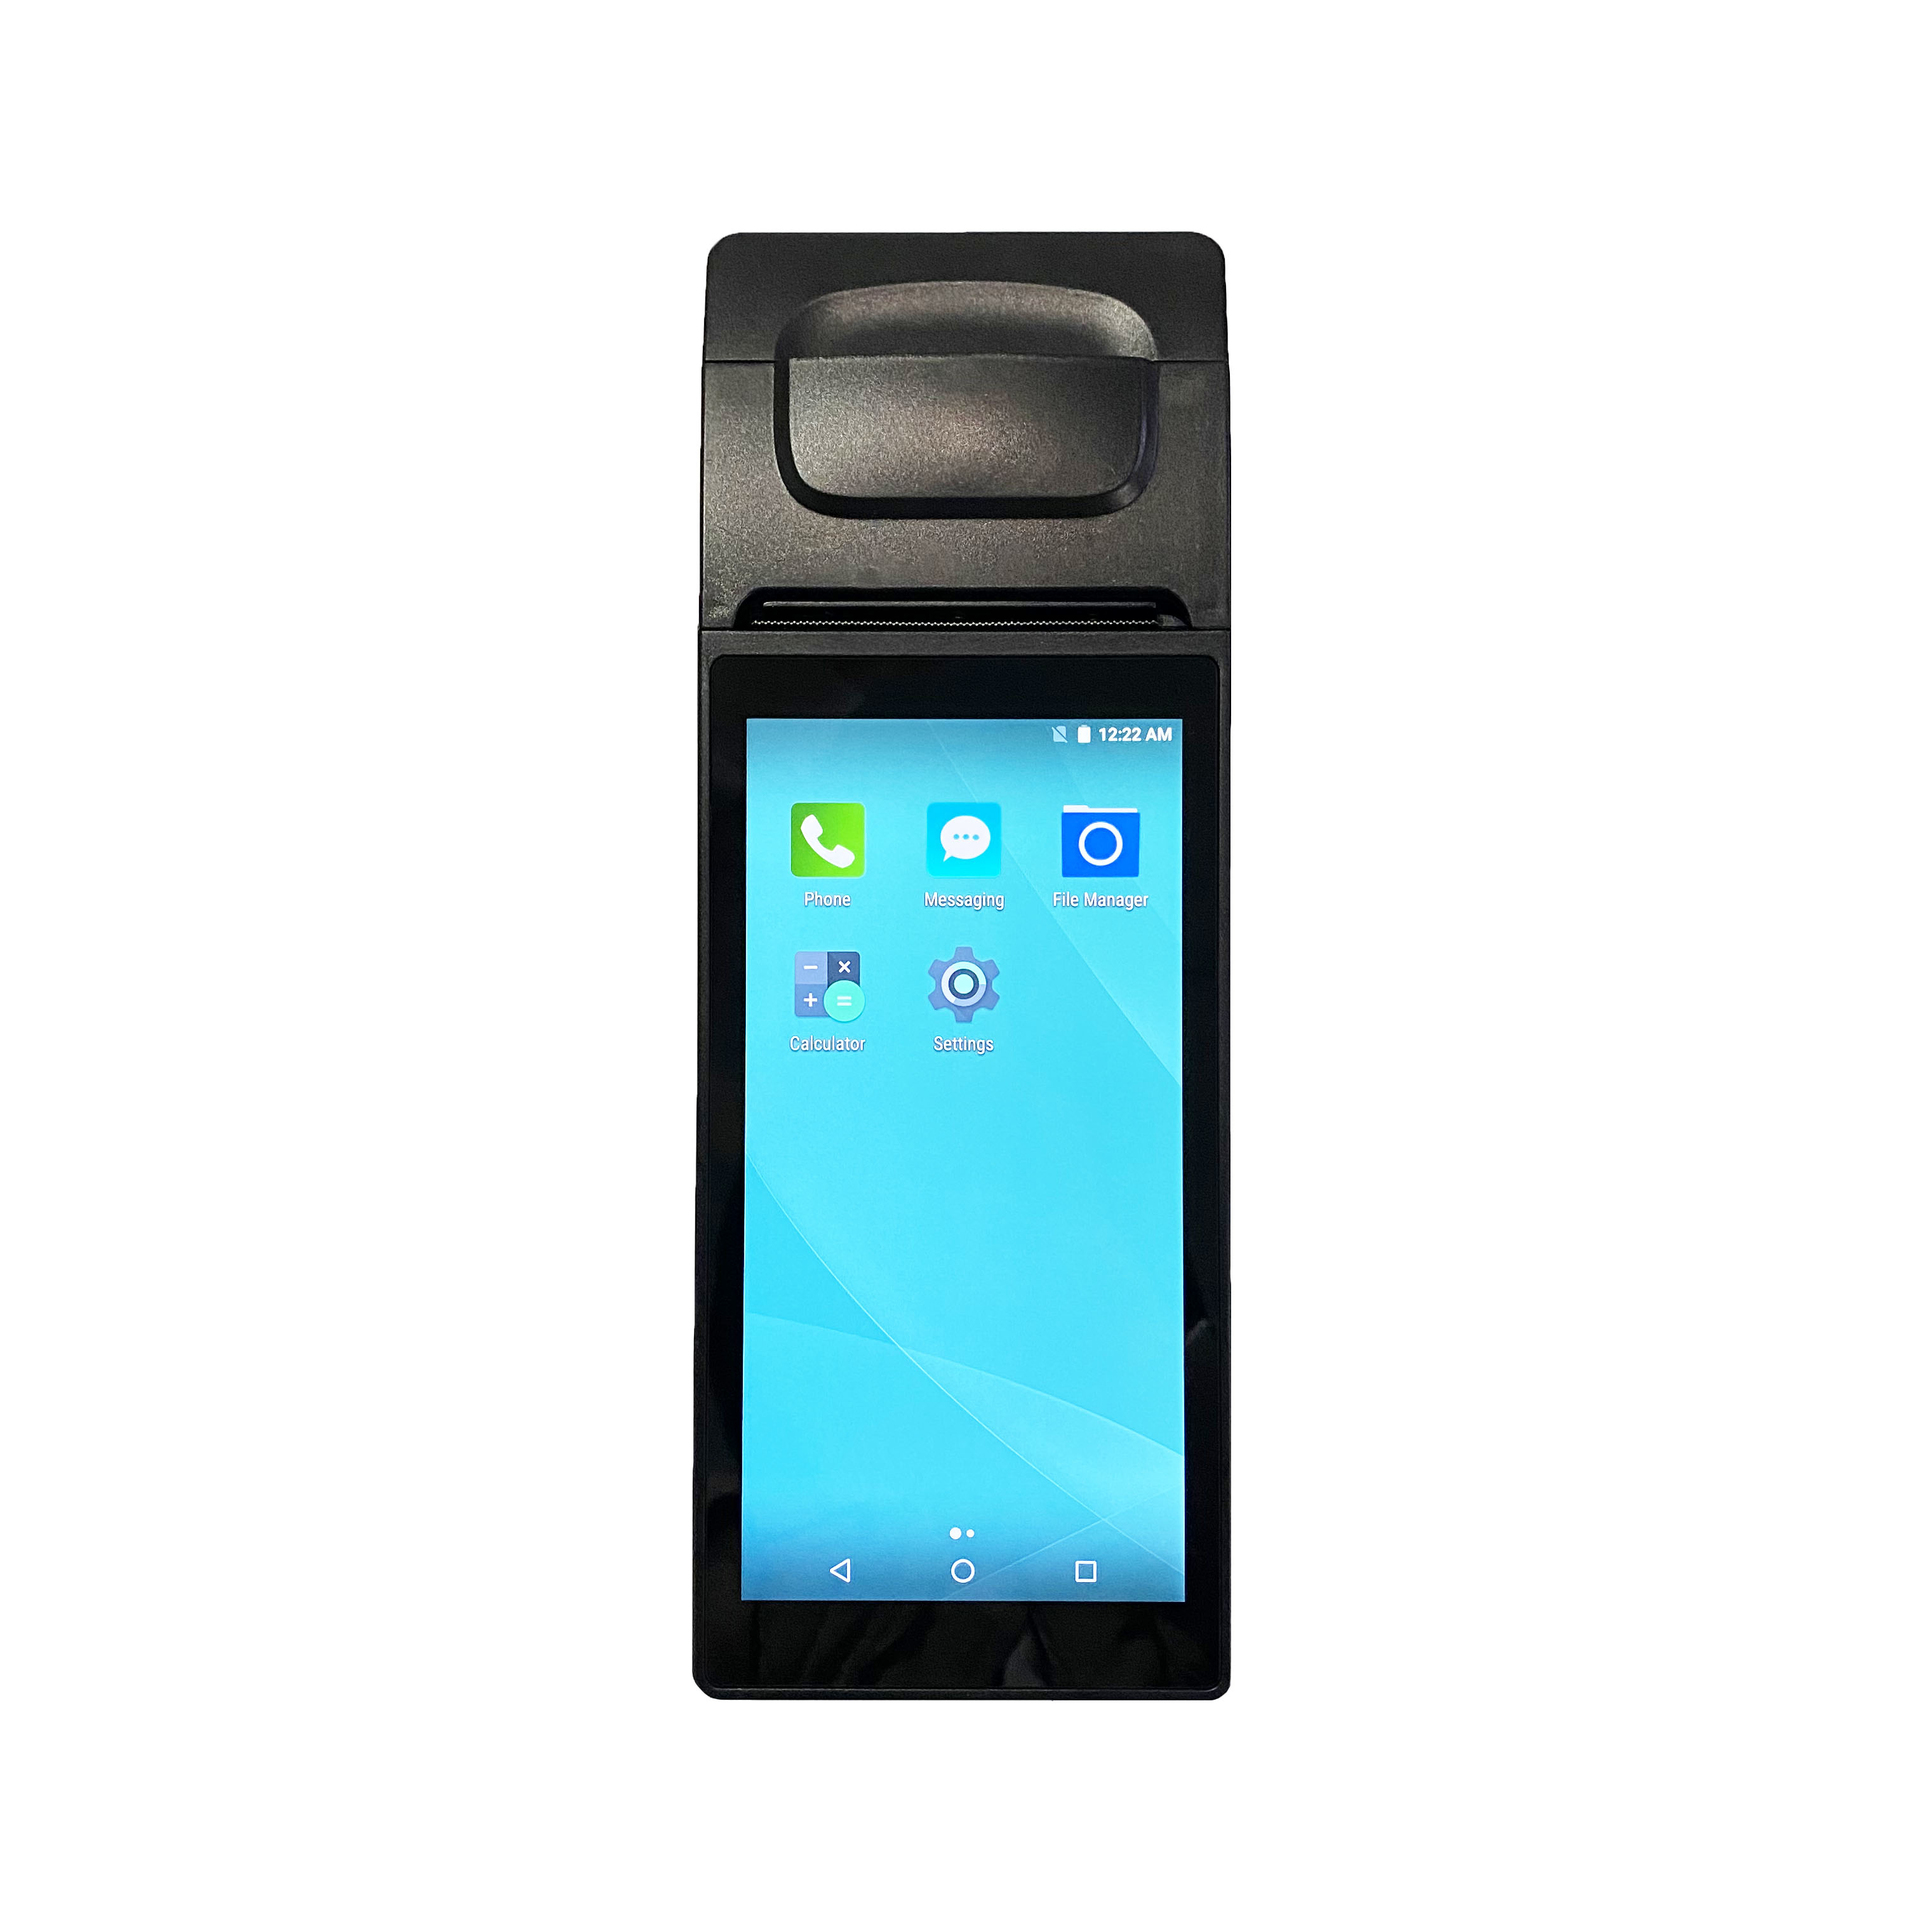 6 inch Touch Screen Contactless Online Ordering Handheld Android POS